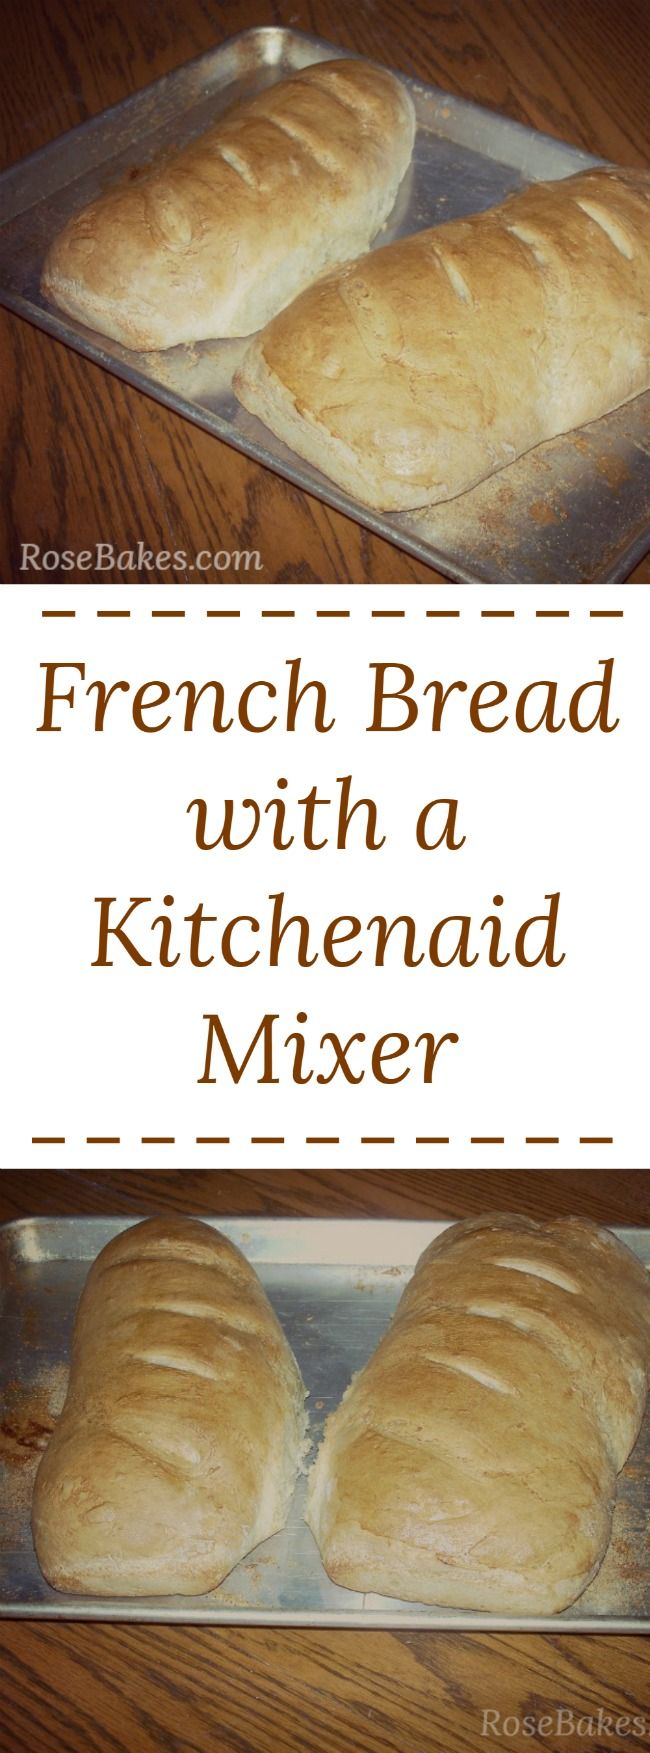 French Bread with  Kitchenaid Mixer